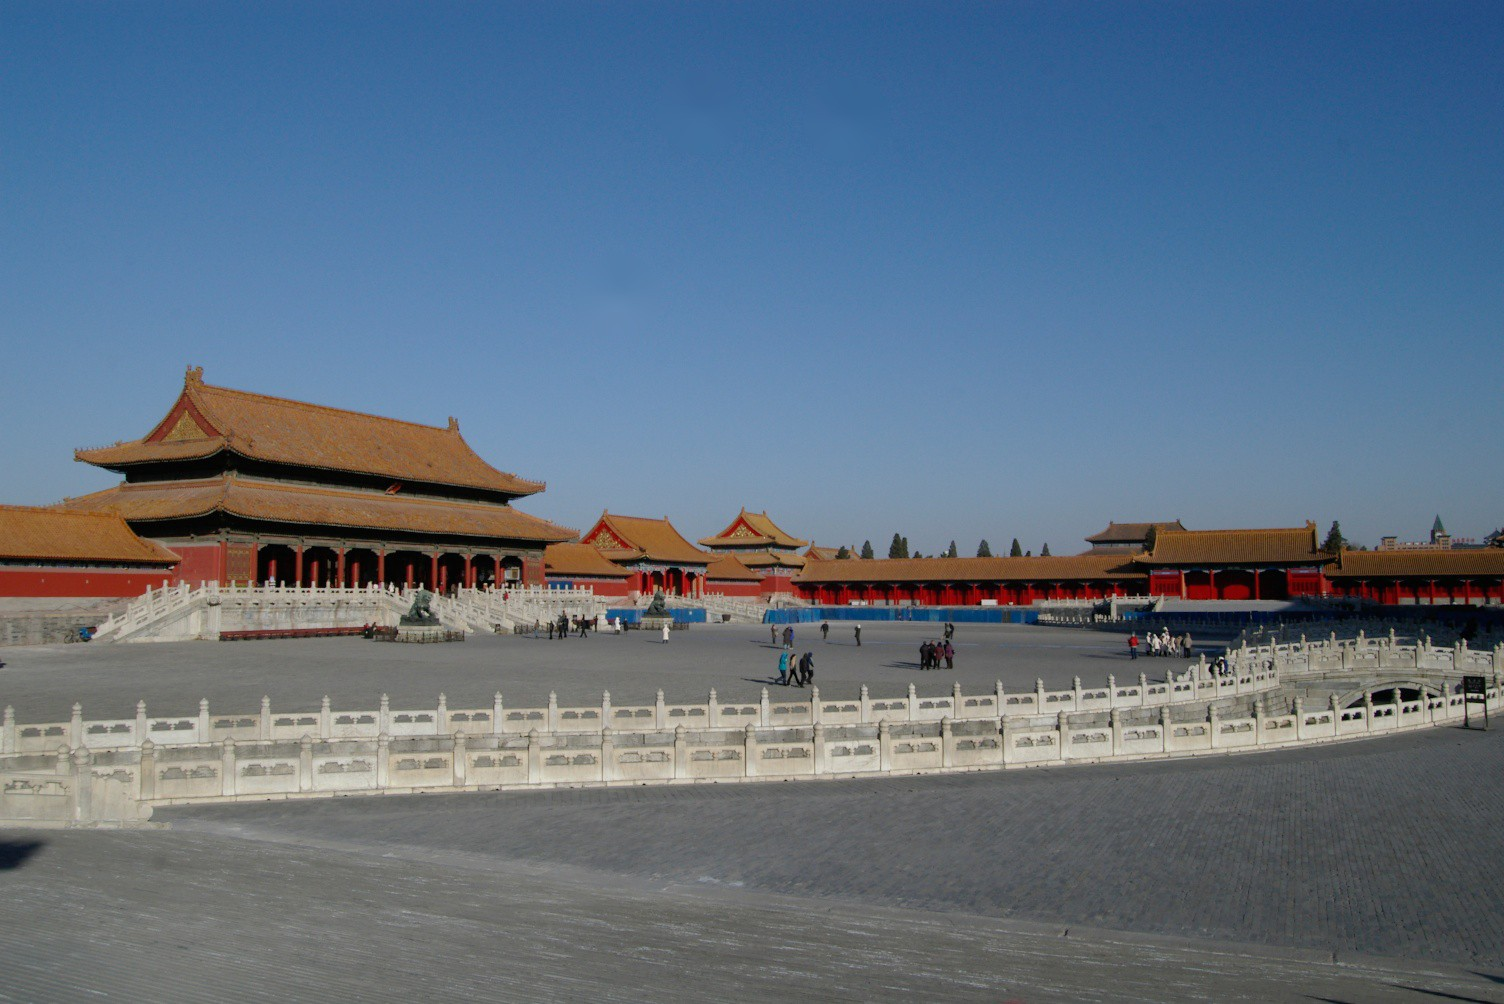 Forbidden City or Palace Museum China